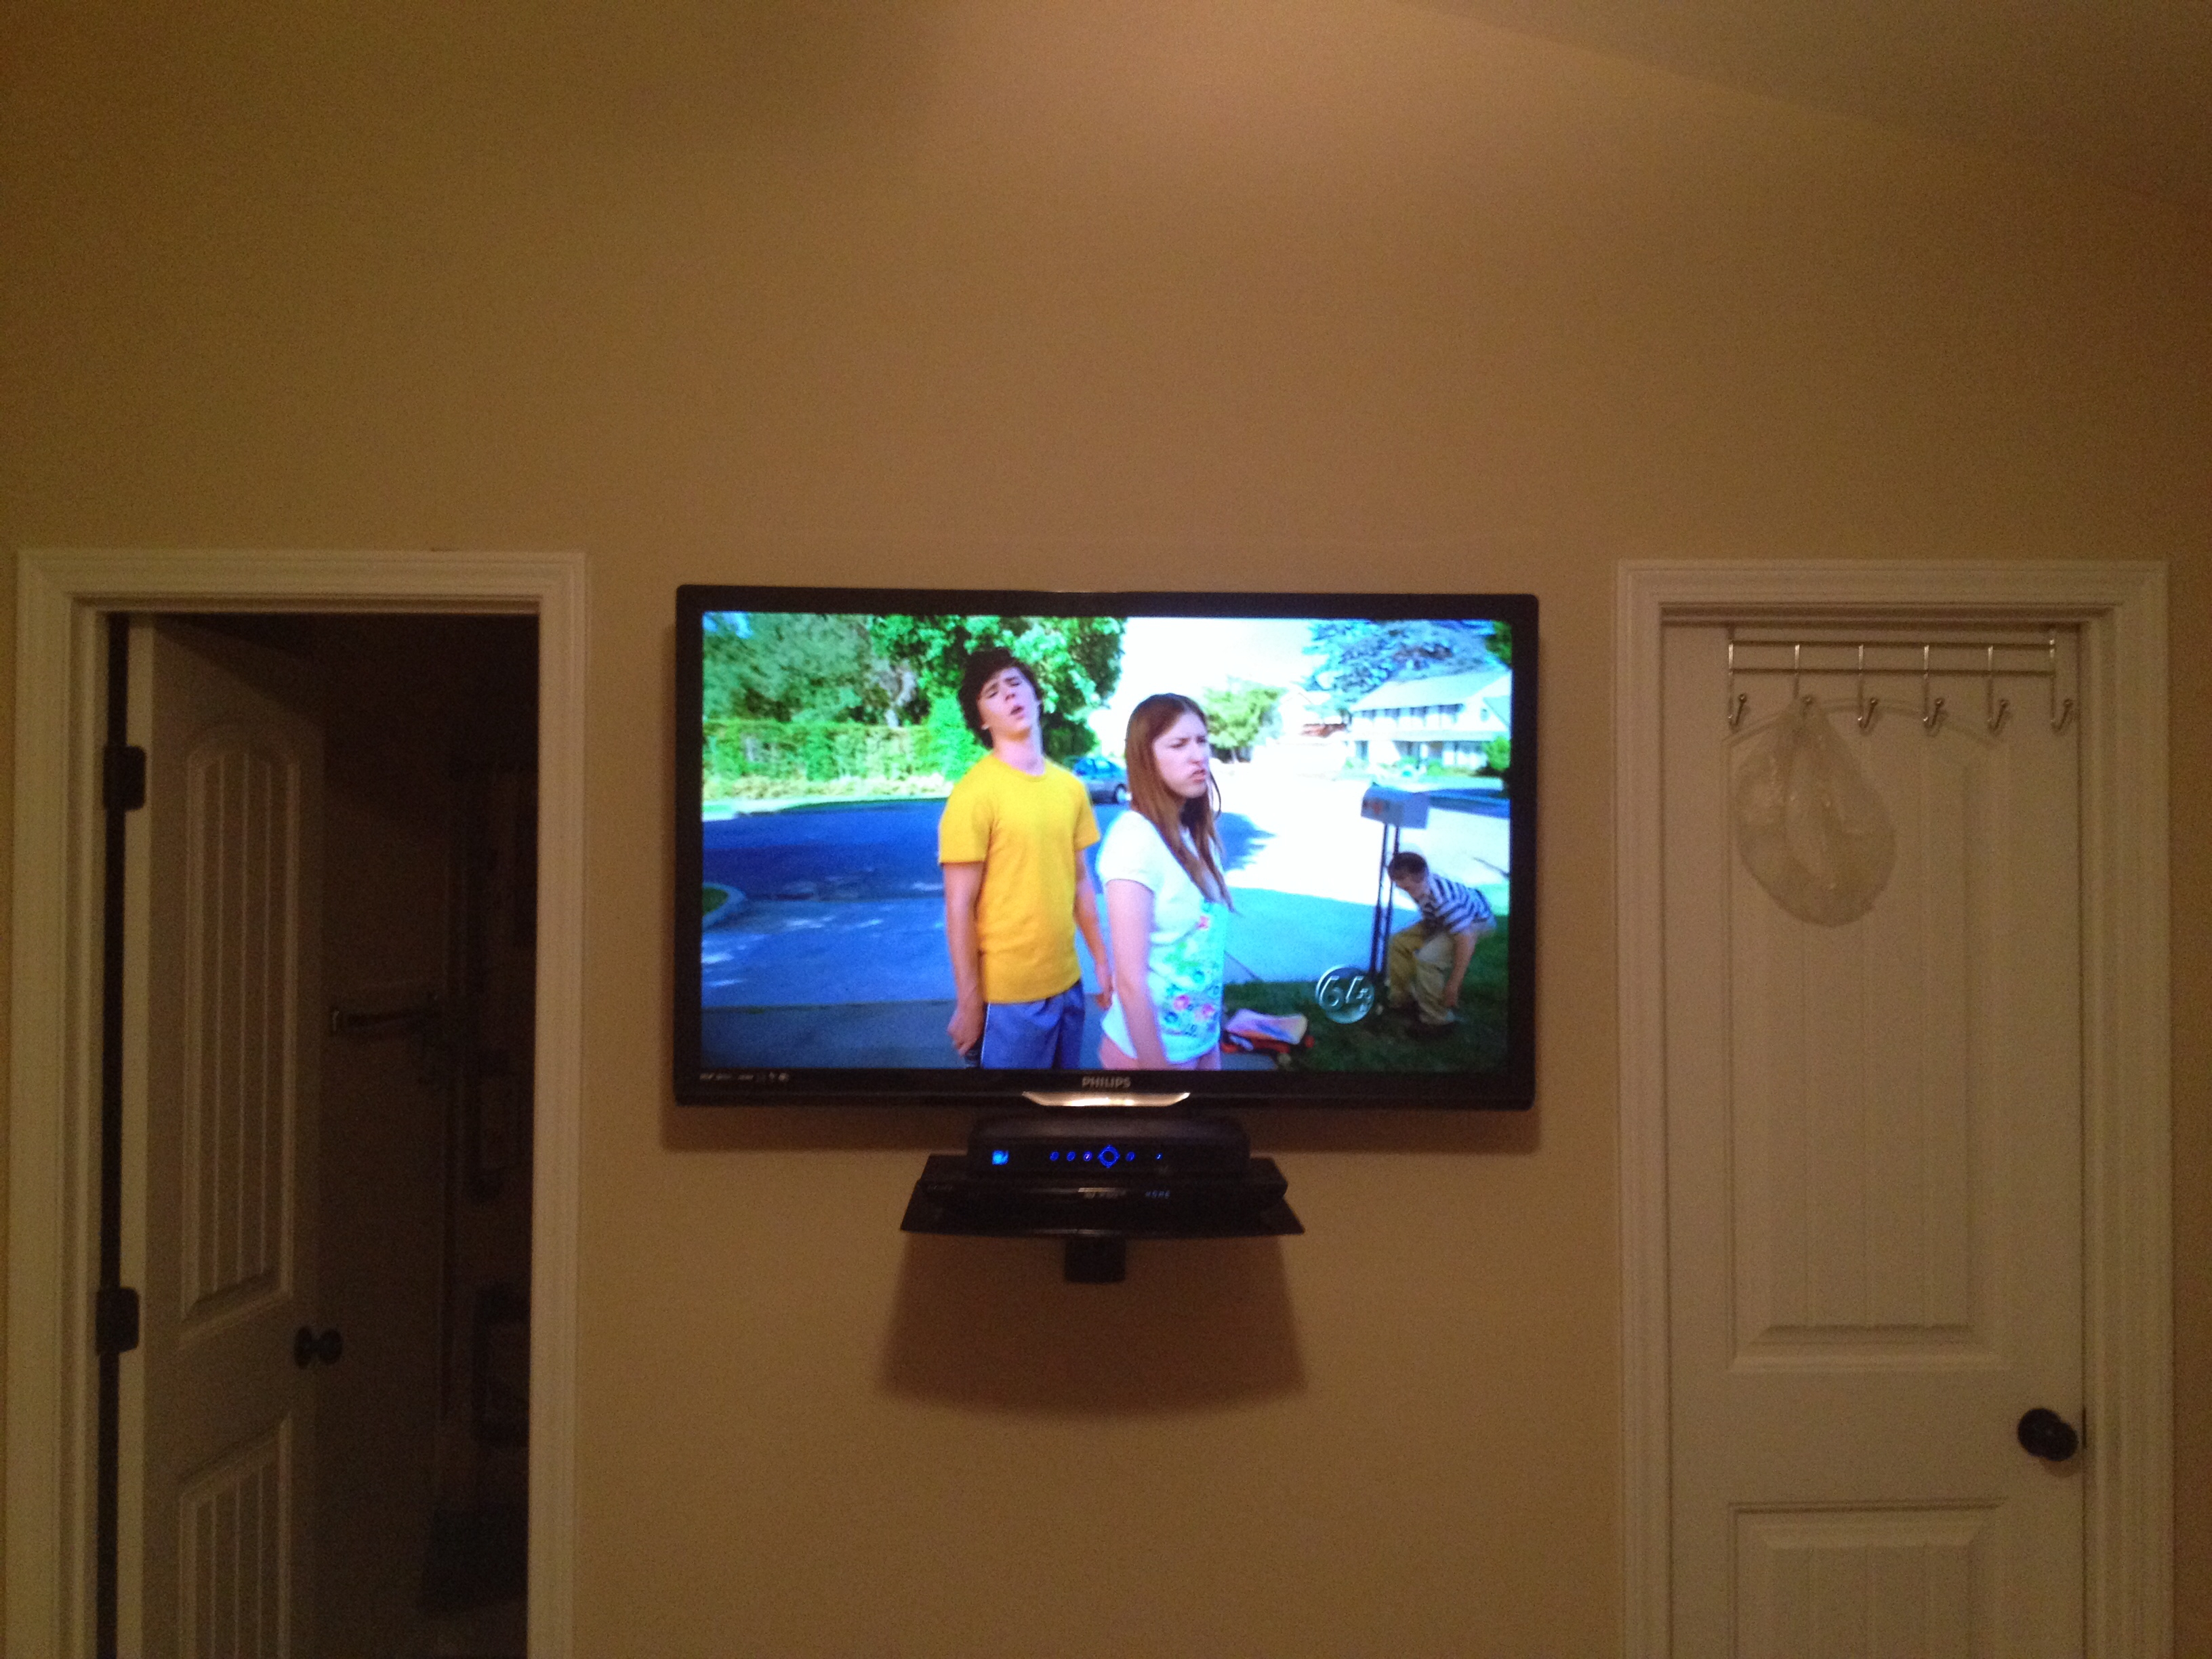 Led Tv Wall Mount Installation With Floating Glass Shelf For Cable In Floating Glass Shelf For Dvd Player (#7 of 12)